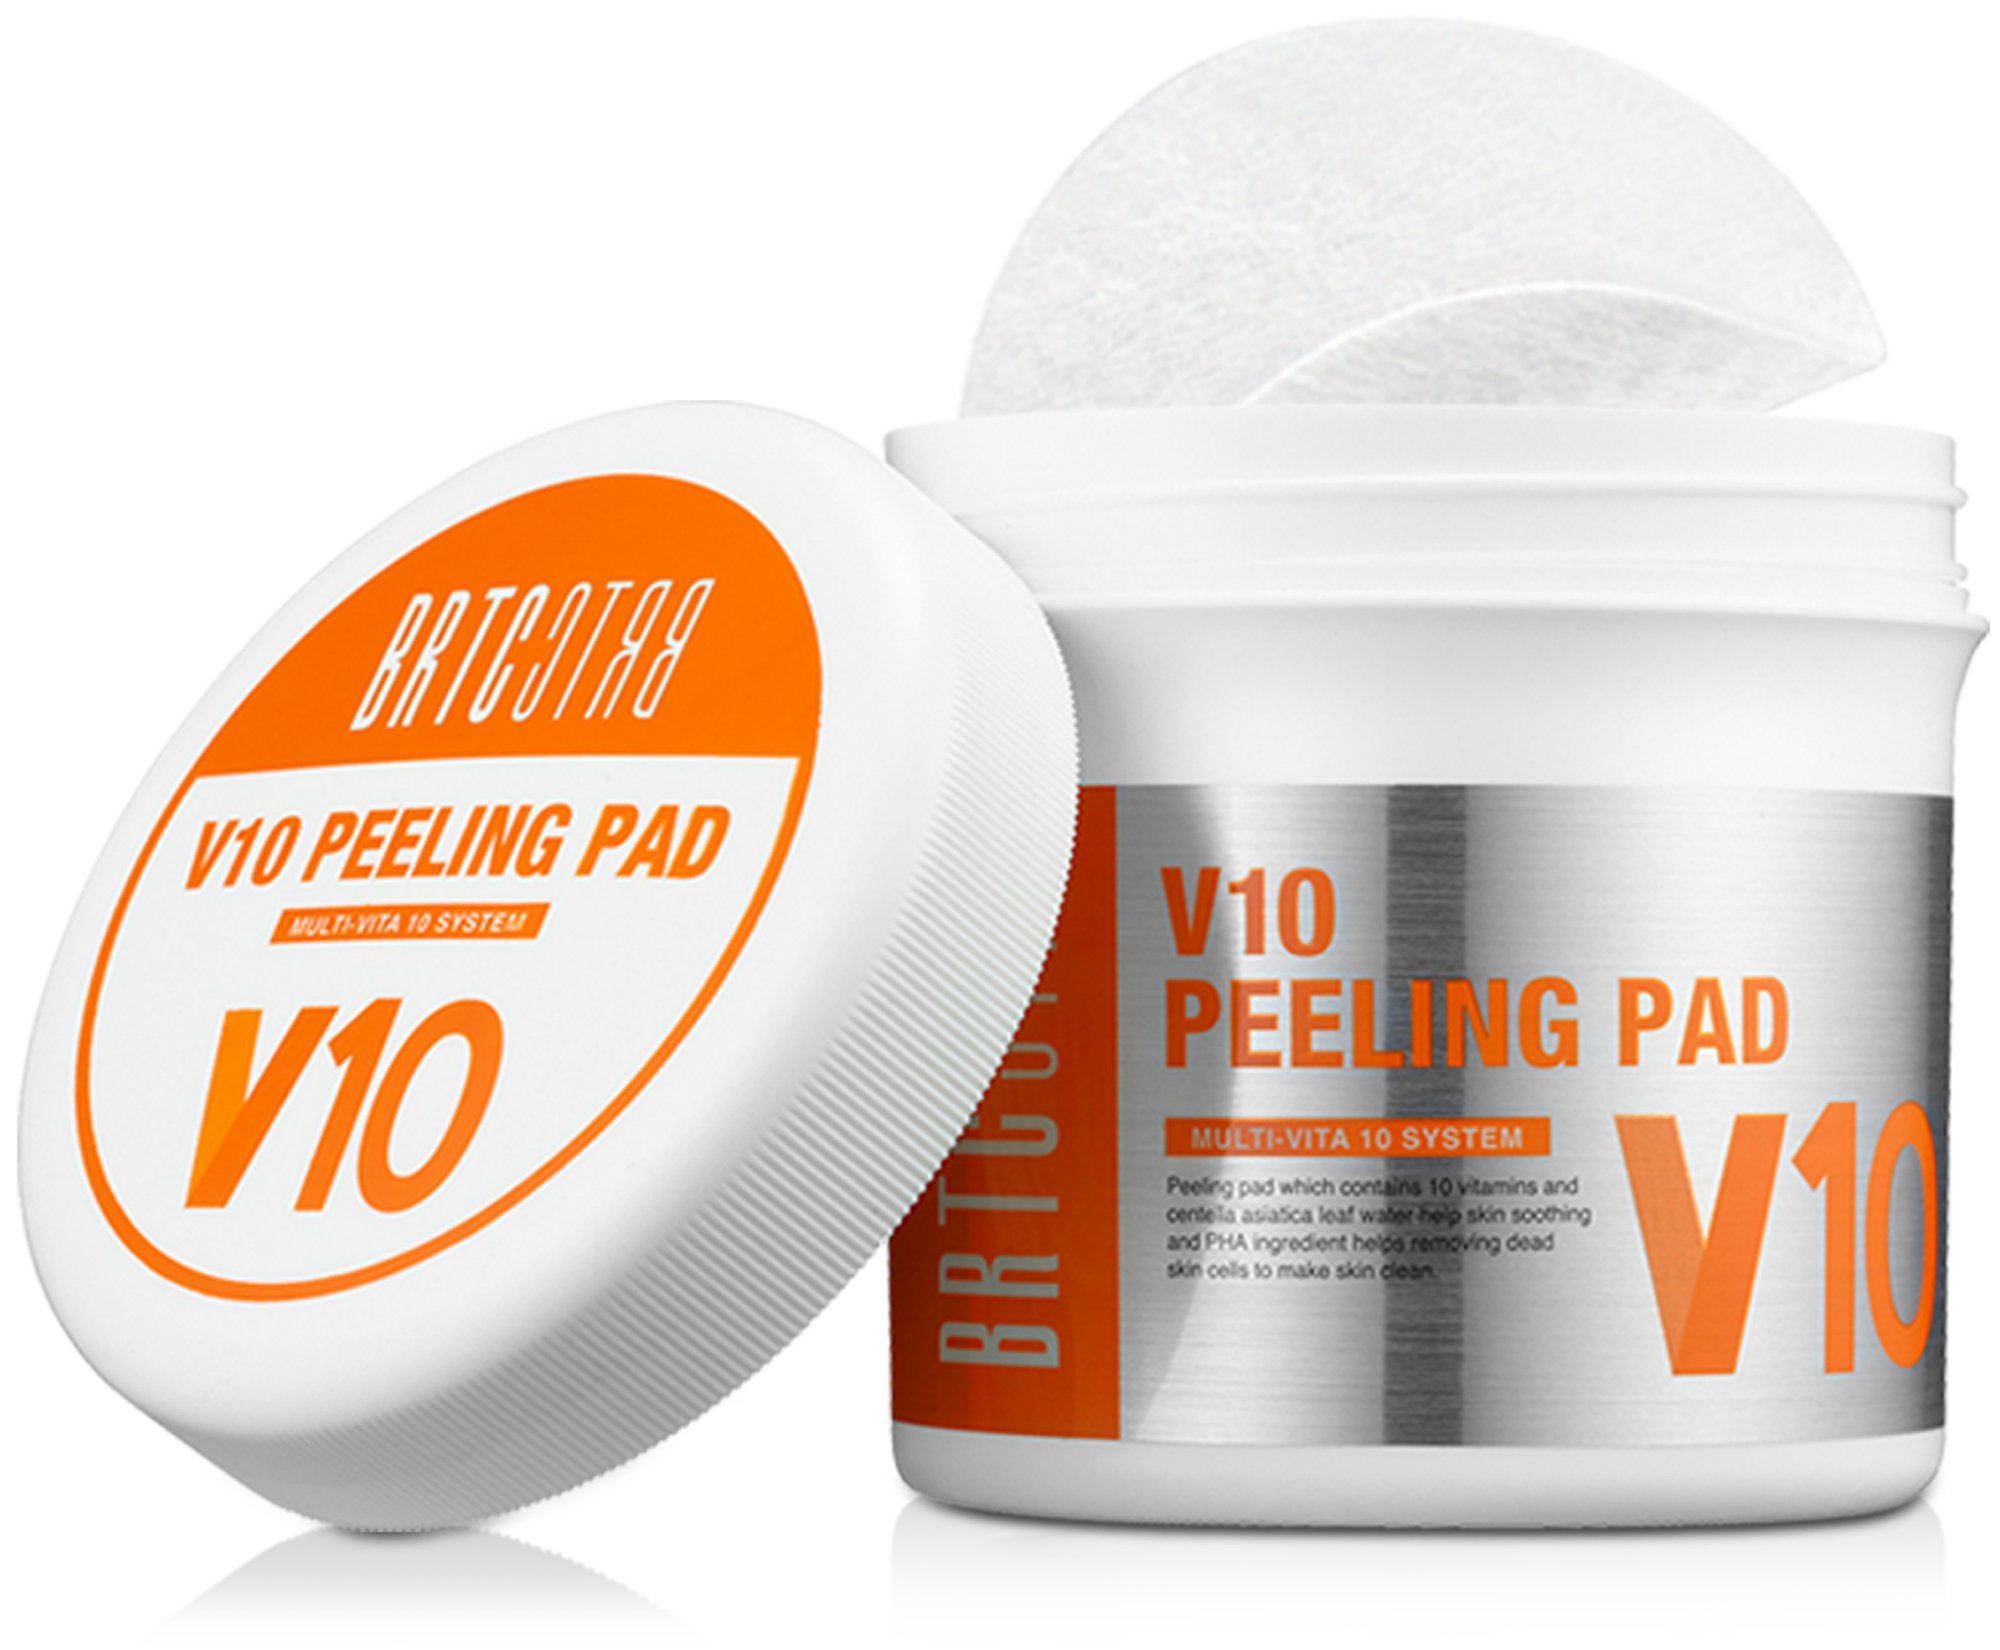 BRTC V10 Peel Pads - 80 Count - 10 Vitamins for Skin Soothing, Exfoliation, Moisturizing, and Removing Dead Skin Cells